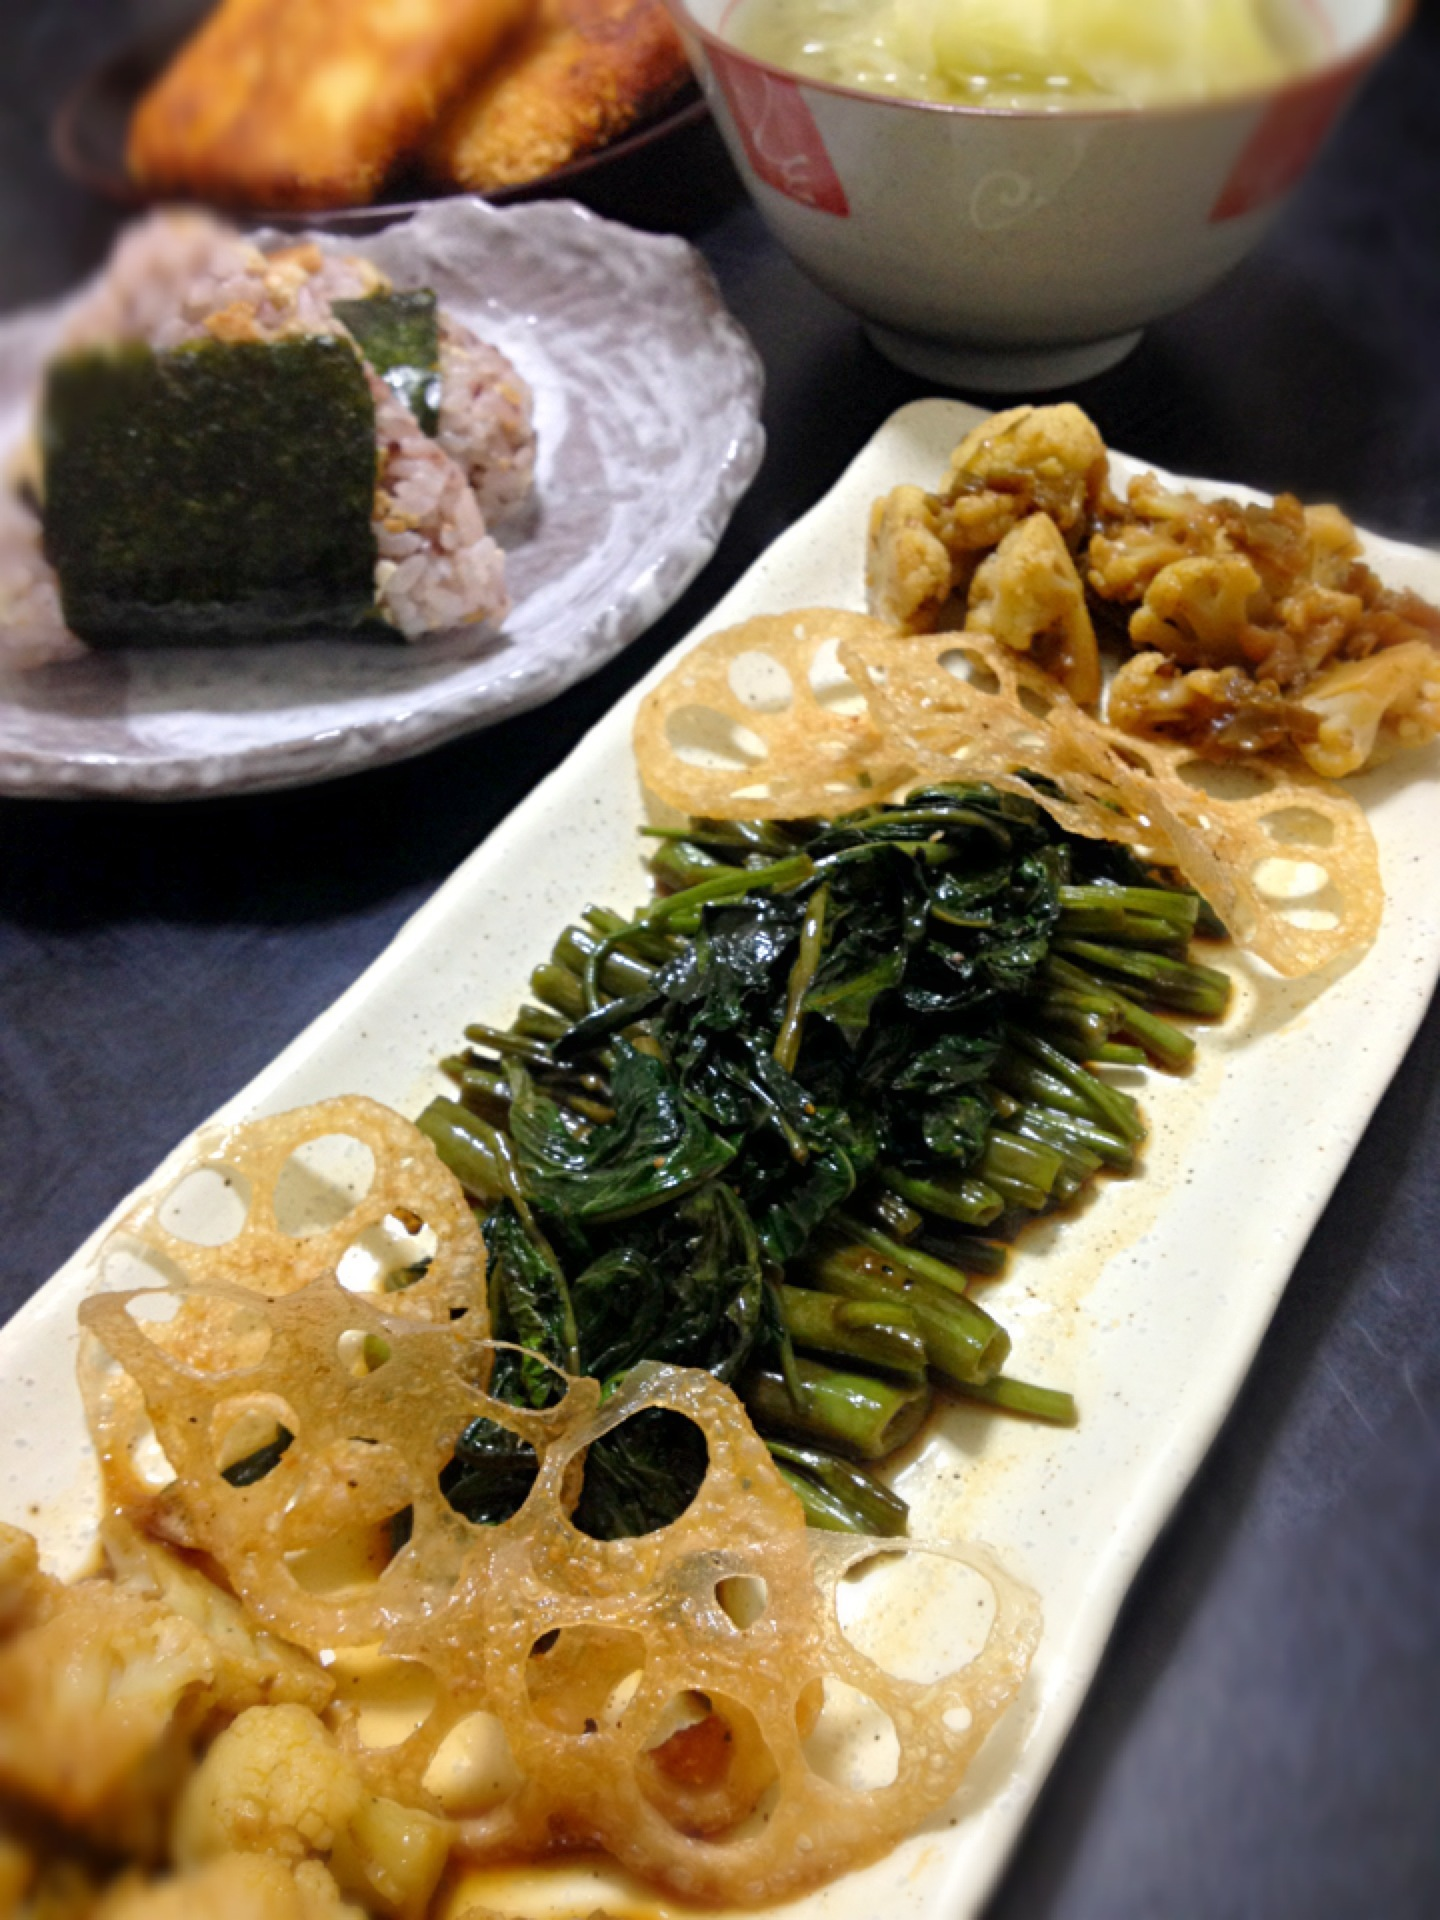 Chili Cauli, Crispy Renkon, Shouyu-Mirin-Sake Swamp Cabbage